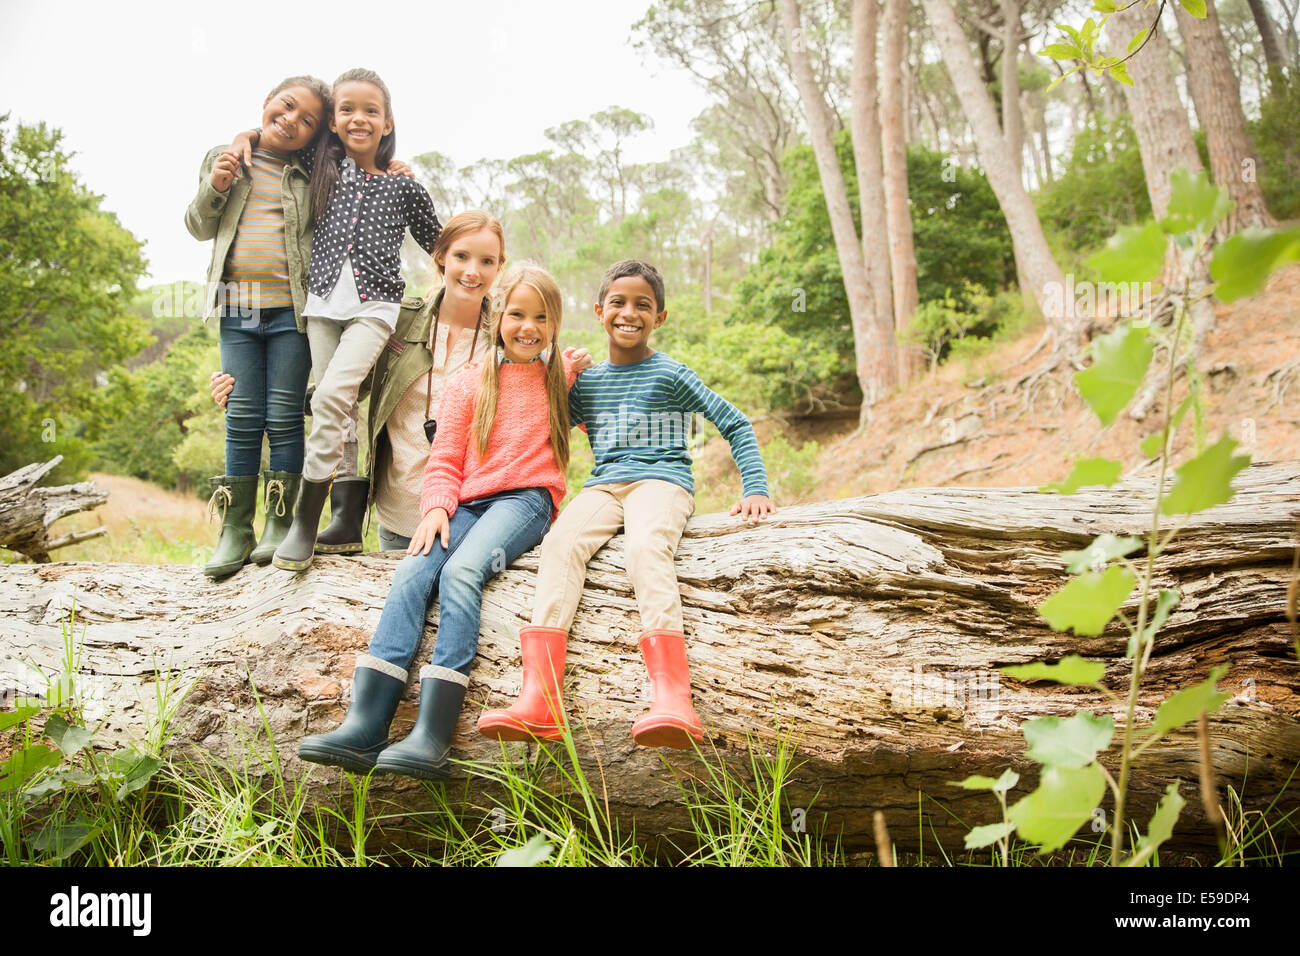 Students and teacher sitting on log in forest - Stock Image